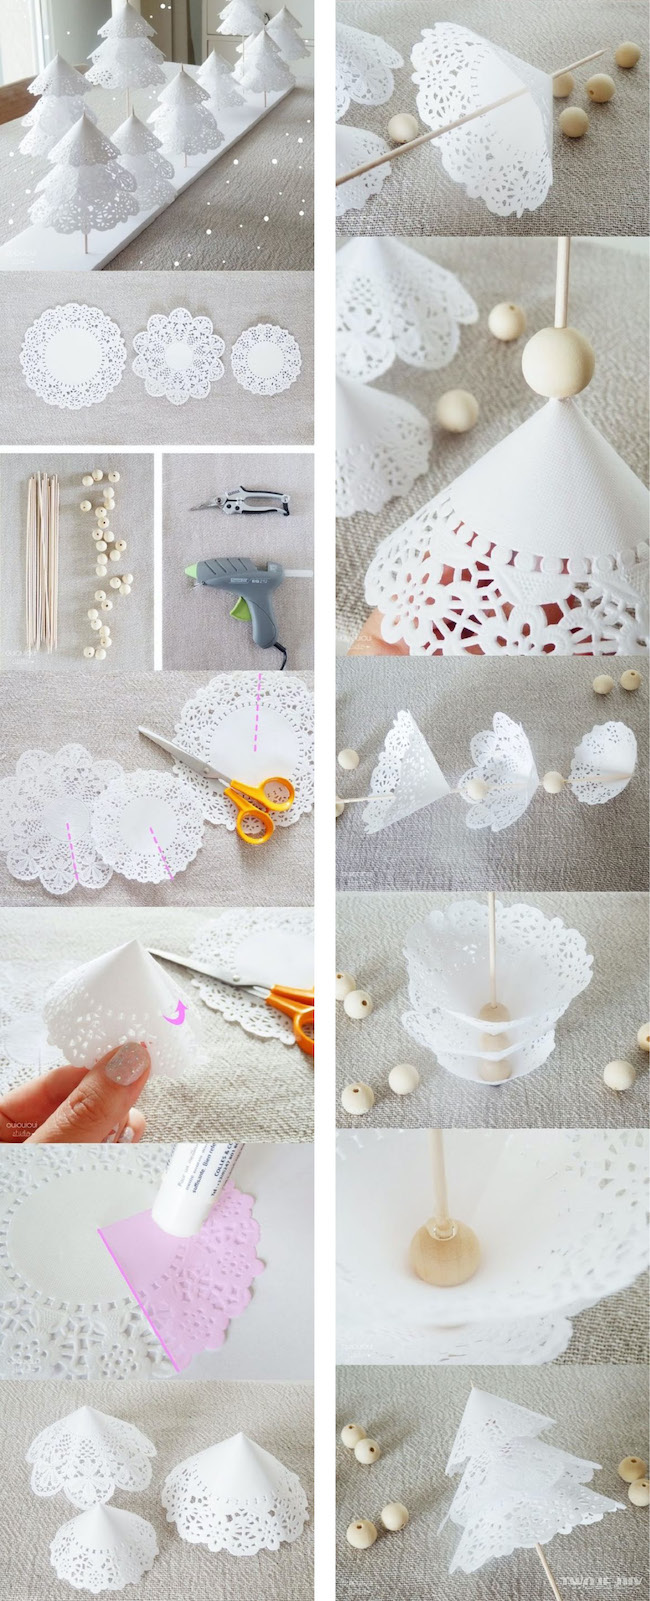 How to Make a Christmas Tree out of paper doilies